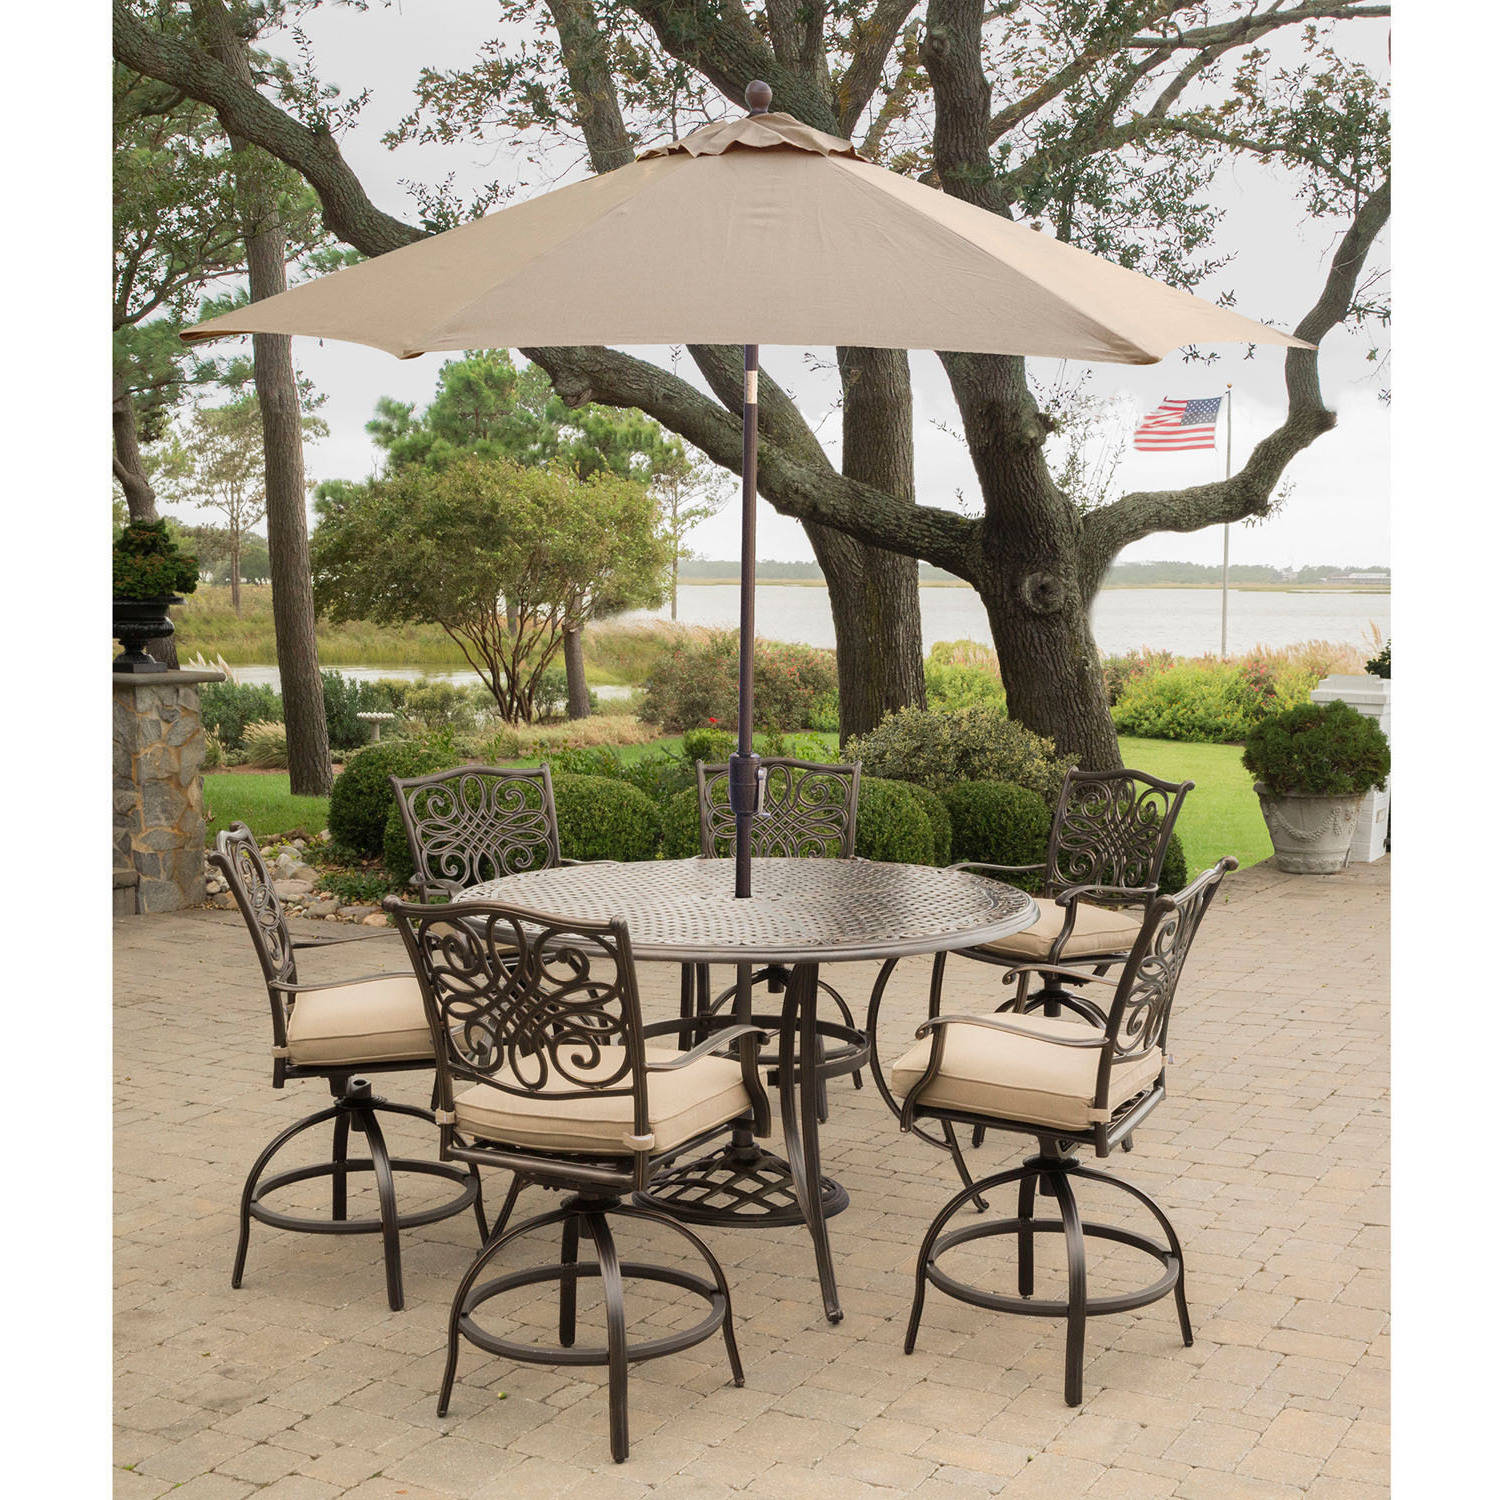 Hanover Outdoor Traditions 7-Piece Bar Set with Cast-Top Table and Umbrella w/Stand